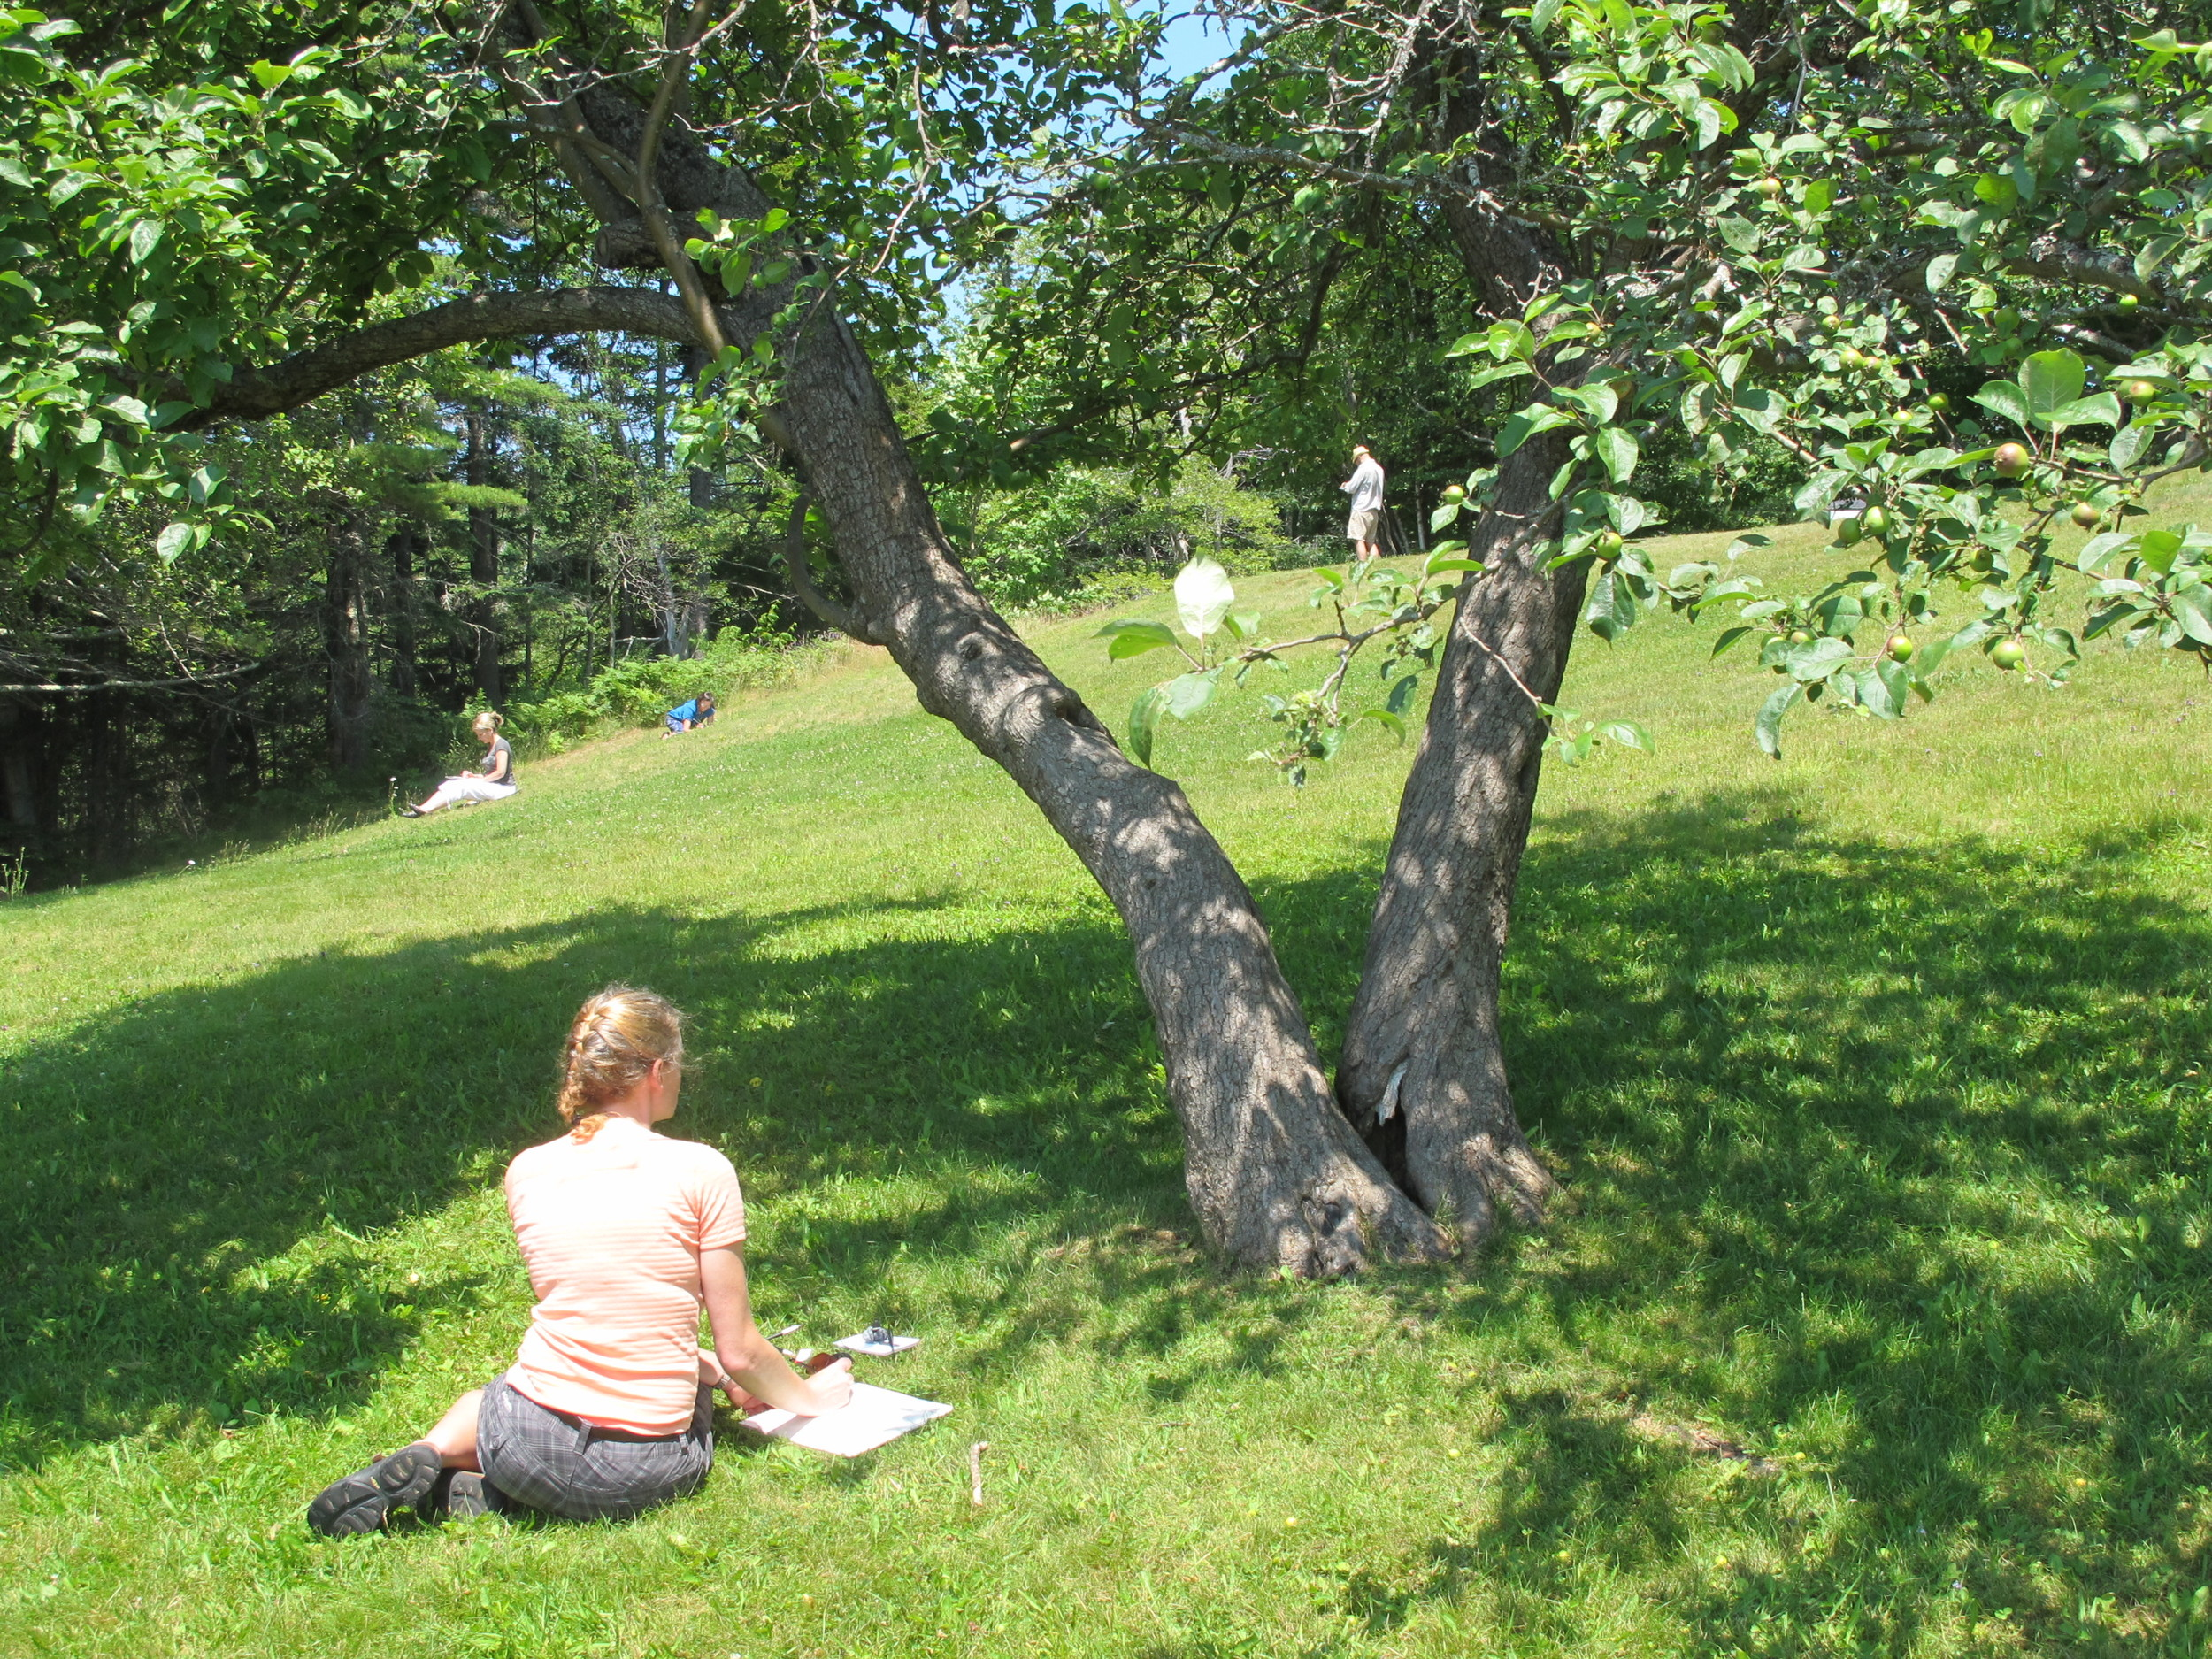 Our artists at work on an apple-tree-shaded hillside that overlooks the sandy beach in Seal Harbor.